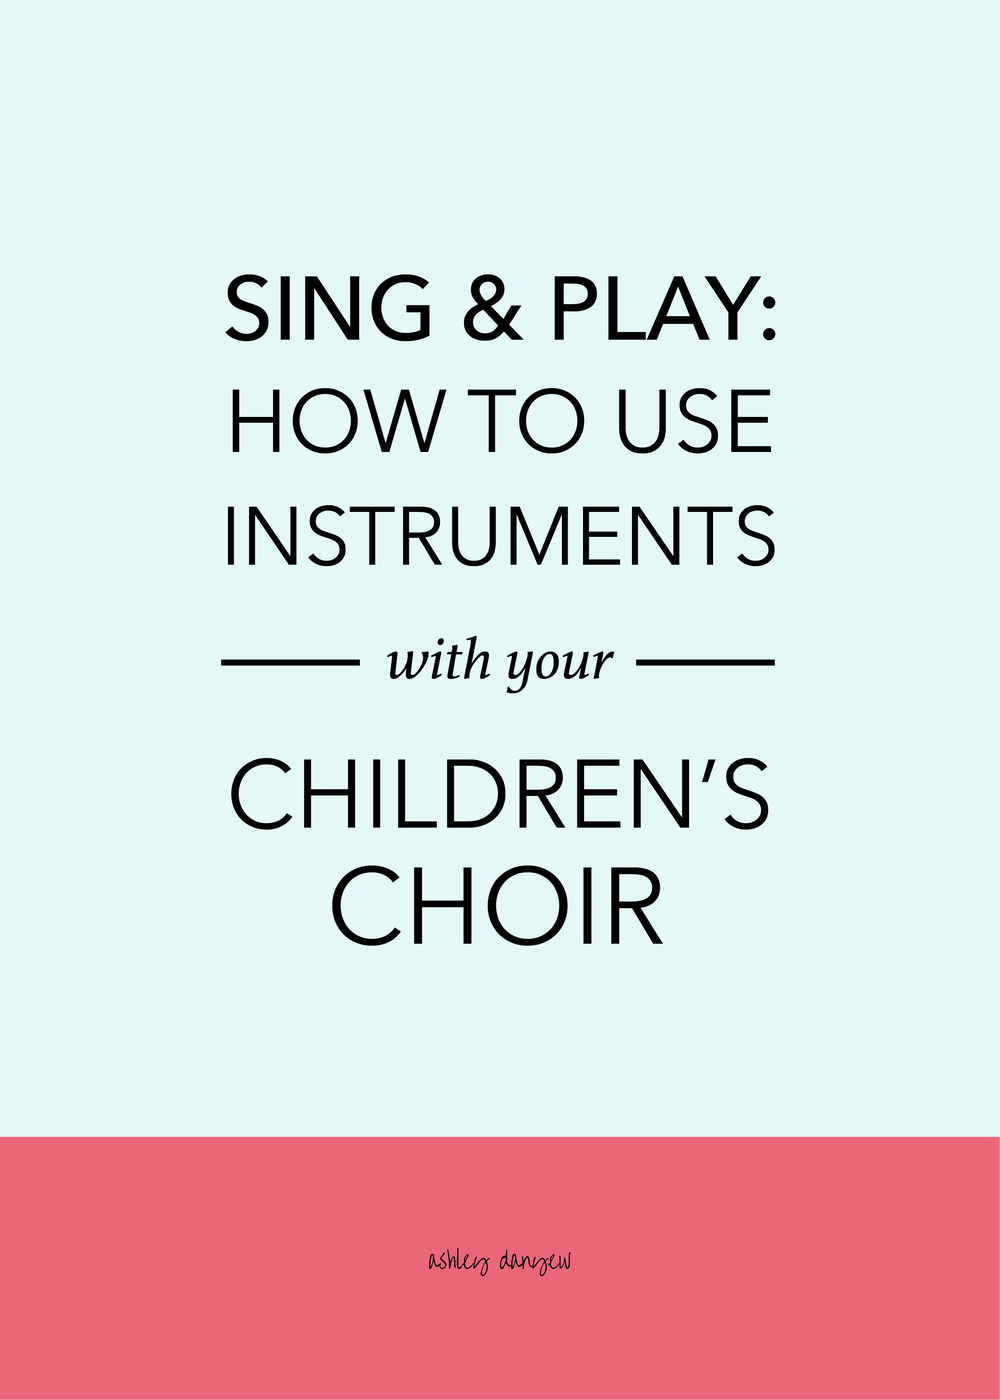 Copy of Sing & Play: How to Use Instruments with Your Children's Choir